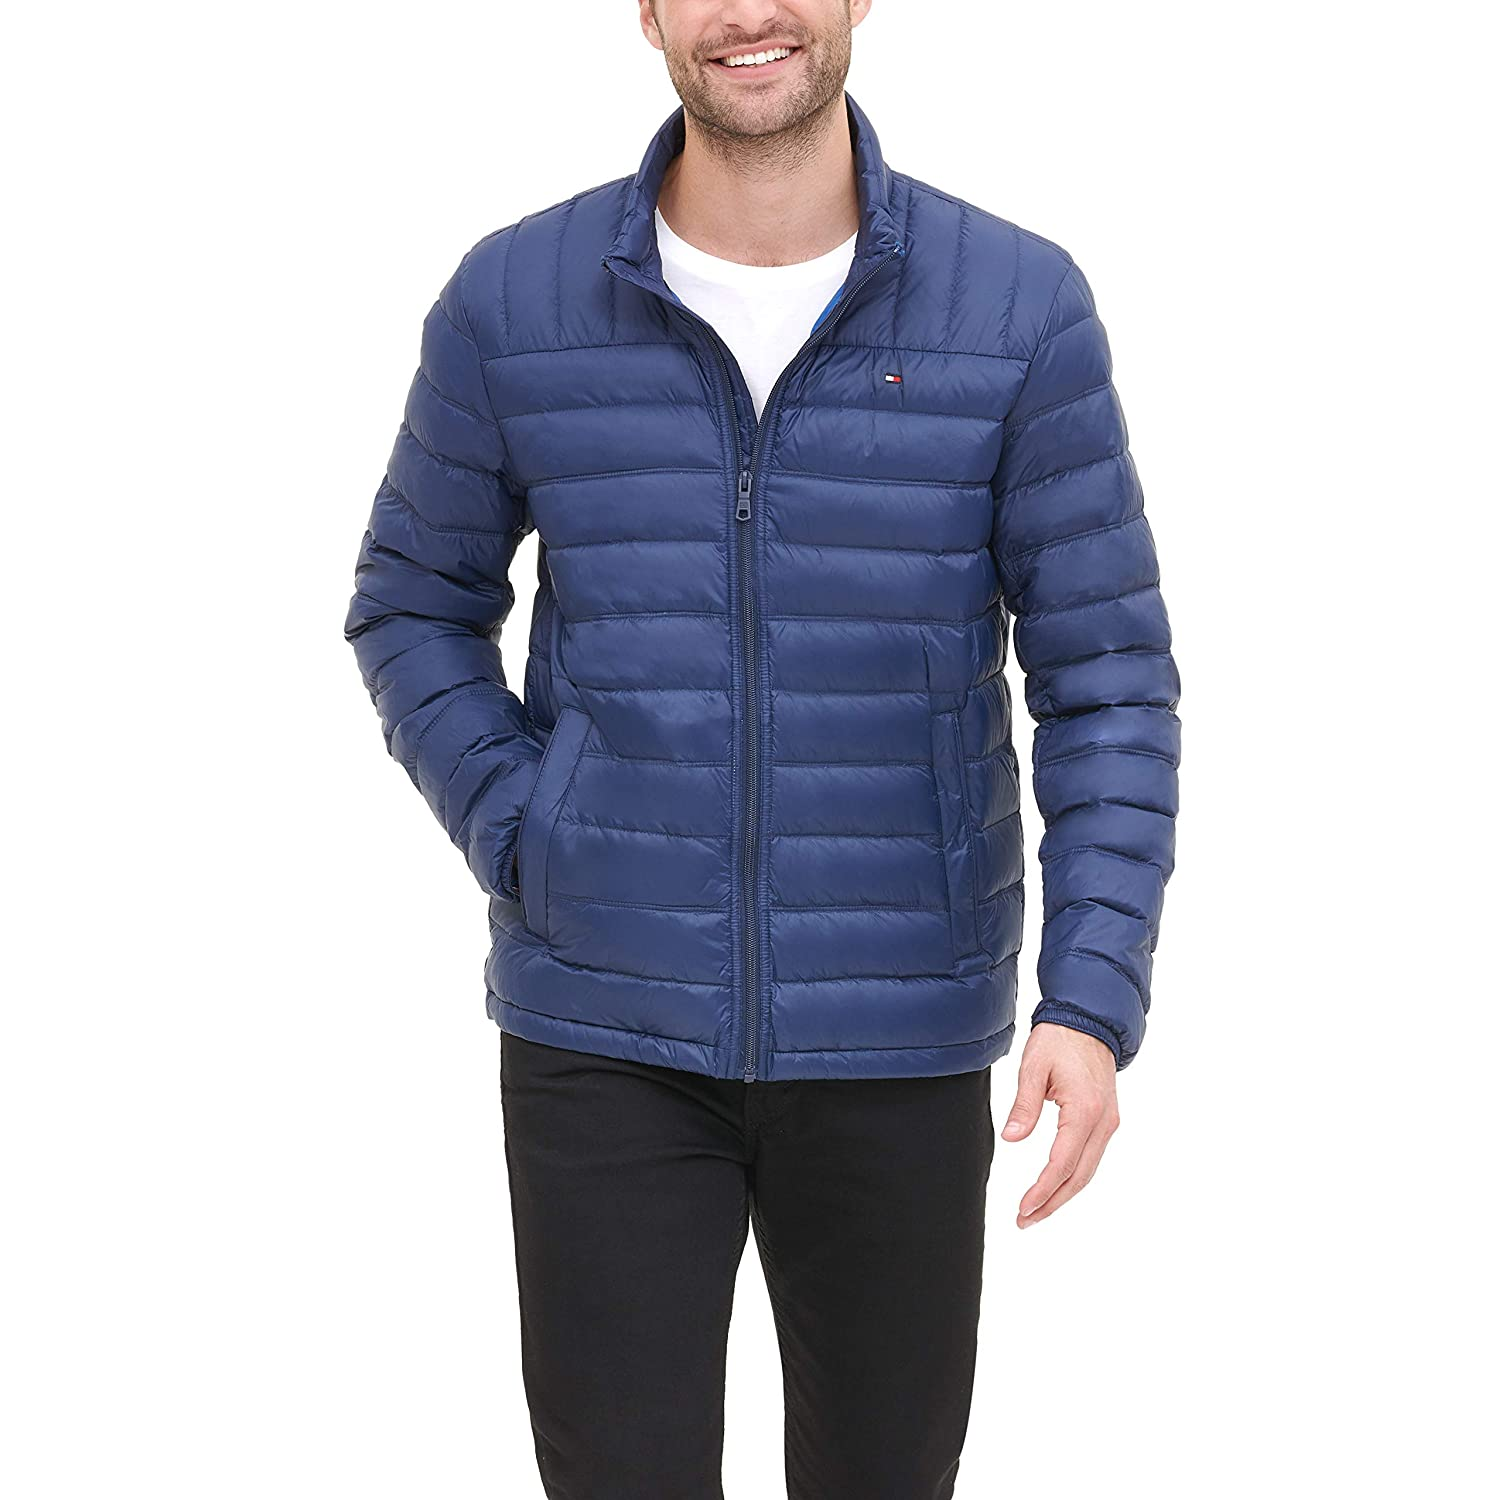 Tommy Hilfiger Mens Packable Down Jacket  Standard and Big   Tall Sizes